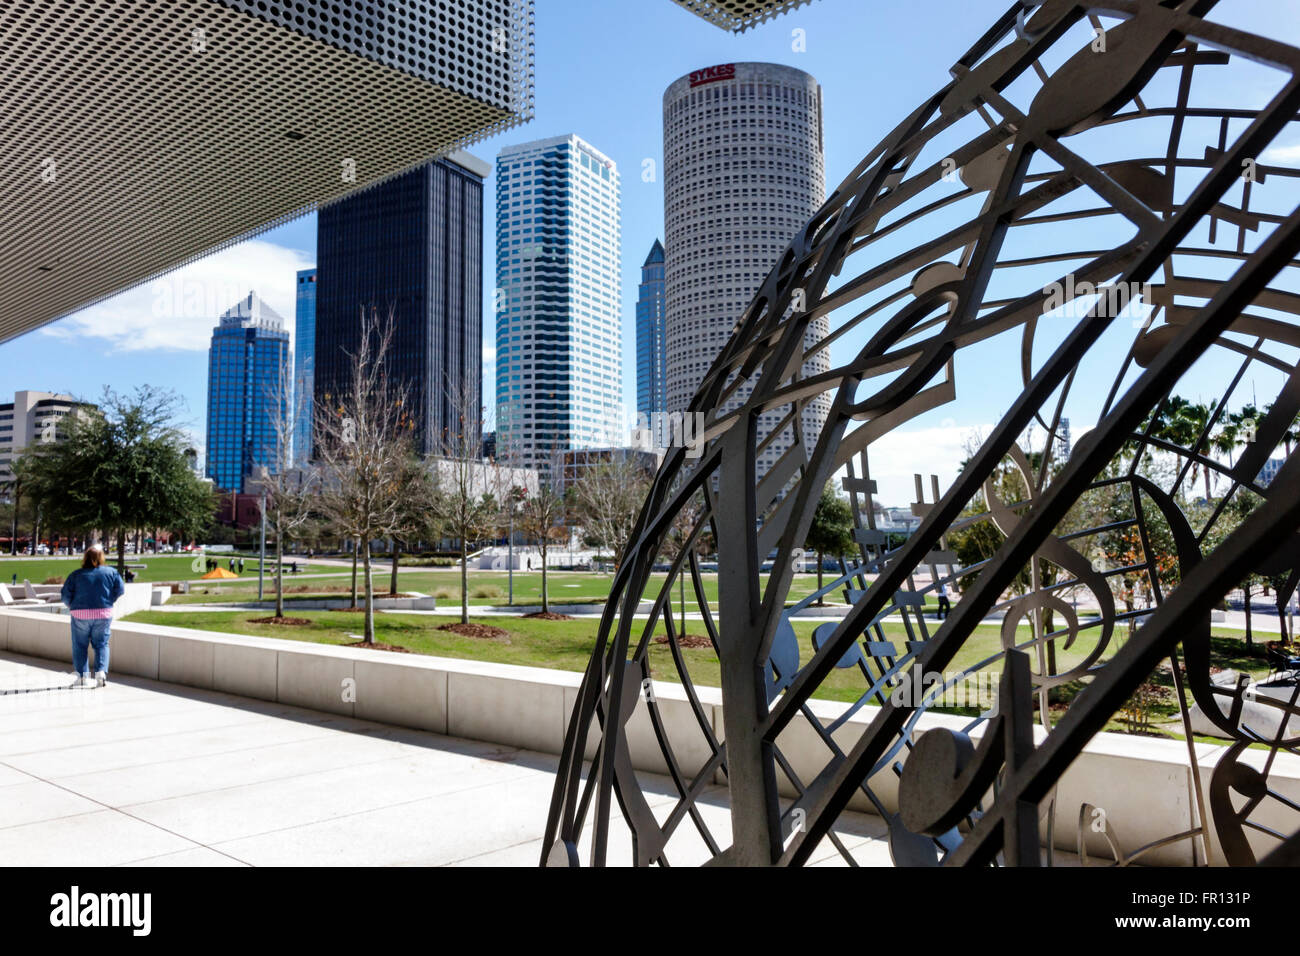 Florida, South, FL, Tampa, Waterfront Arts District, Tampa Museum of Art, Curtis Hixon Waterfront Park, city skyline cityscape, skyscrapers, buildings Stock Photo